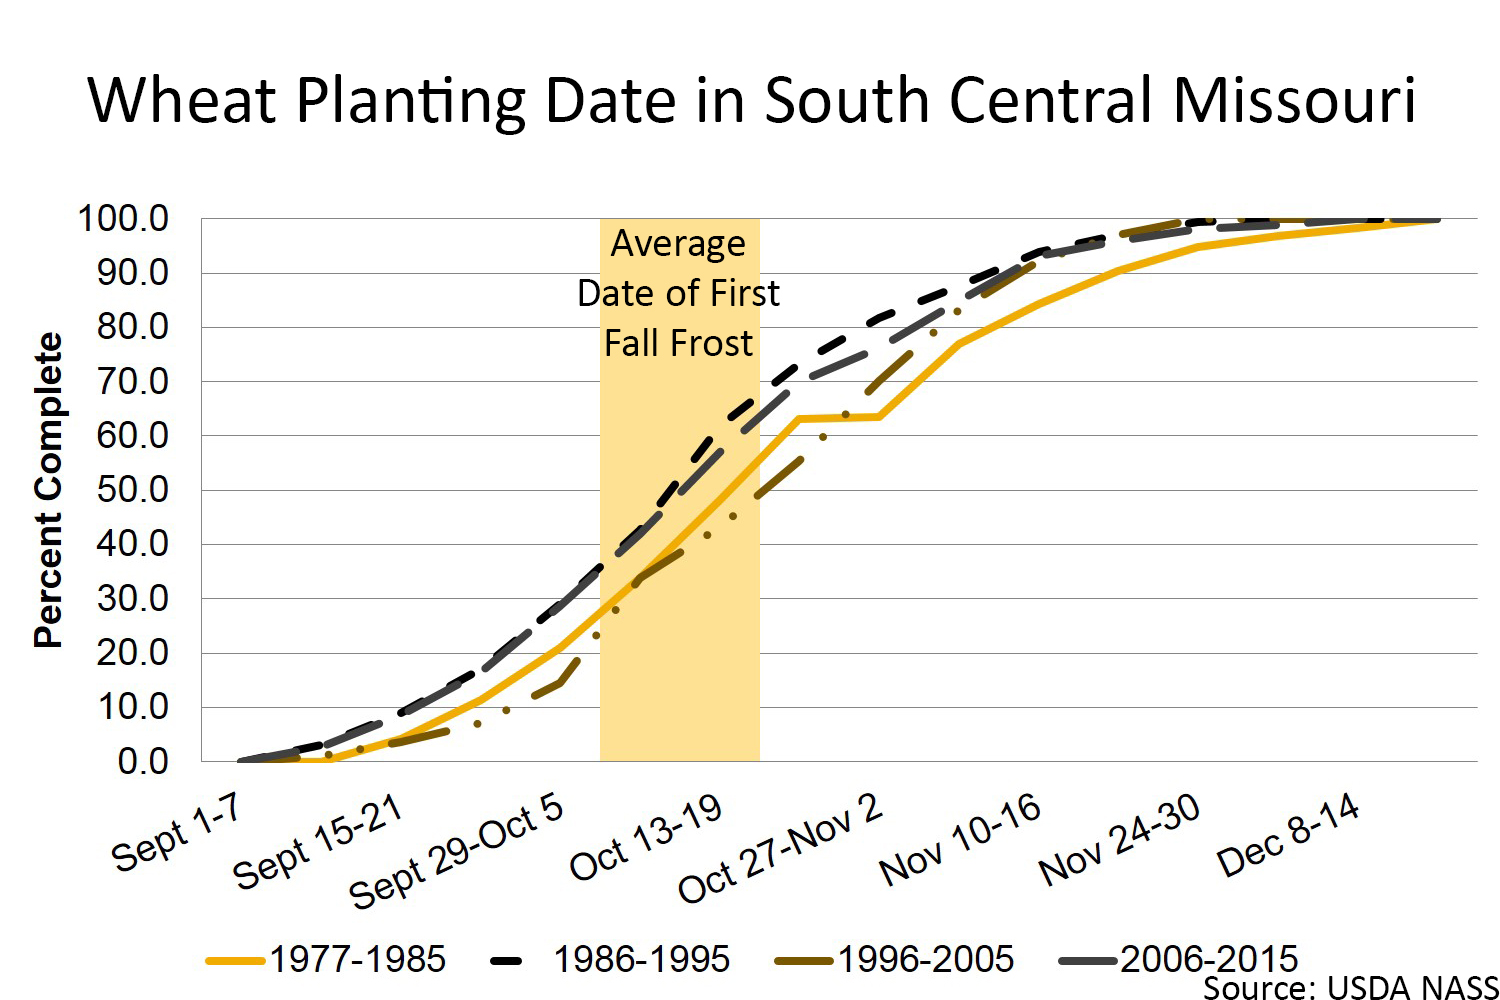 Wheat planting date in south central Missouri chart